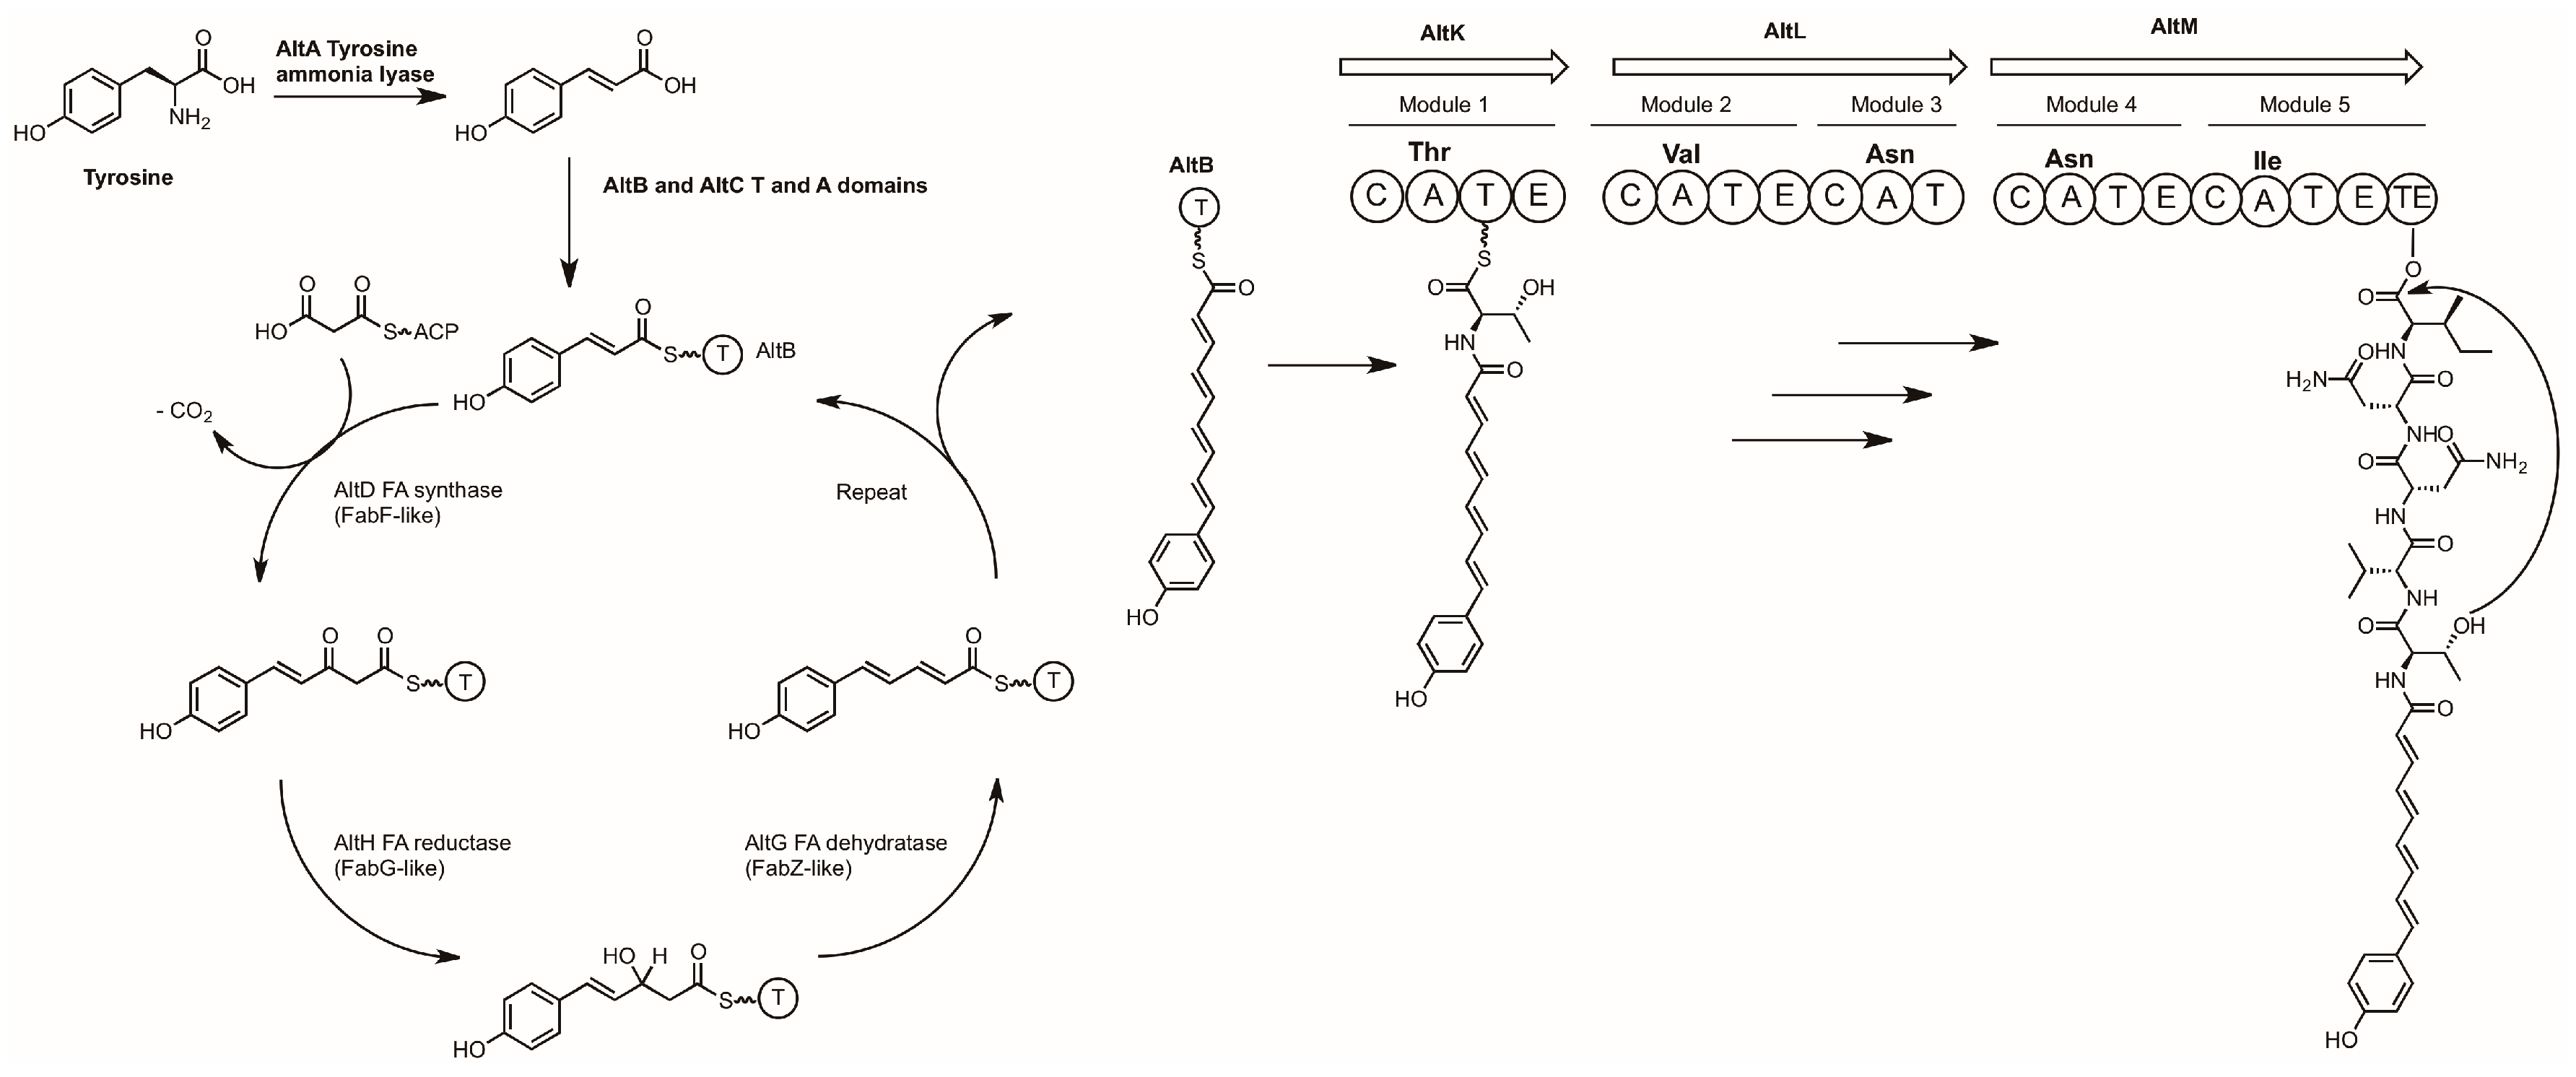 mercedes benz w204 wiring diagram asm marine drugs free full text investigating the biosynthesis of  marine drugs free full text